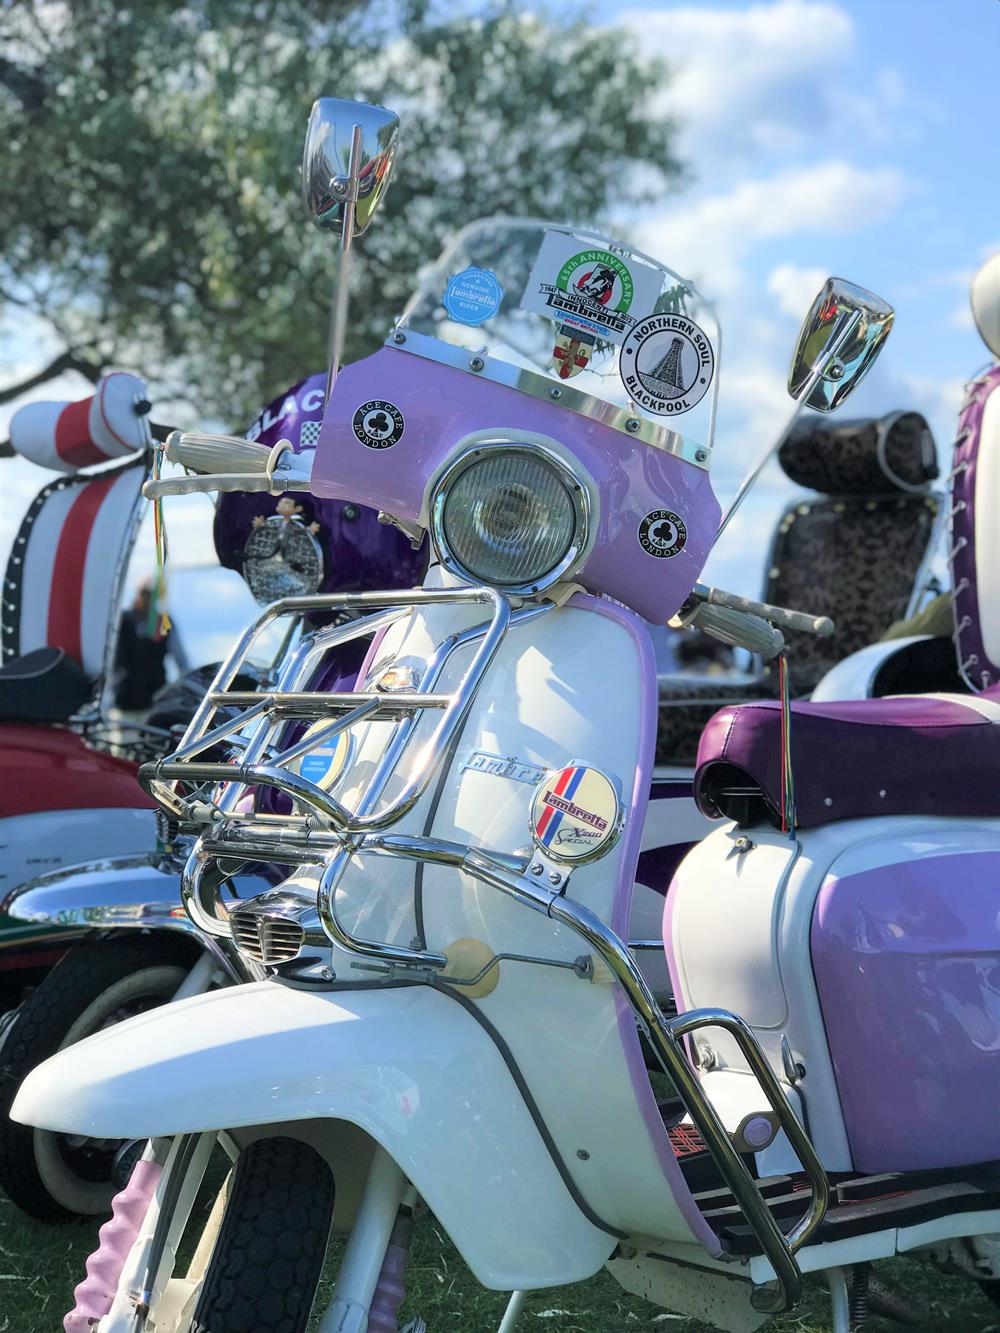 Lilac and white Lambretta with flyscreen